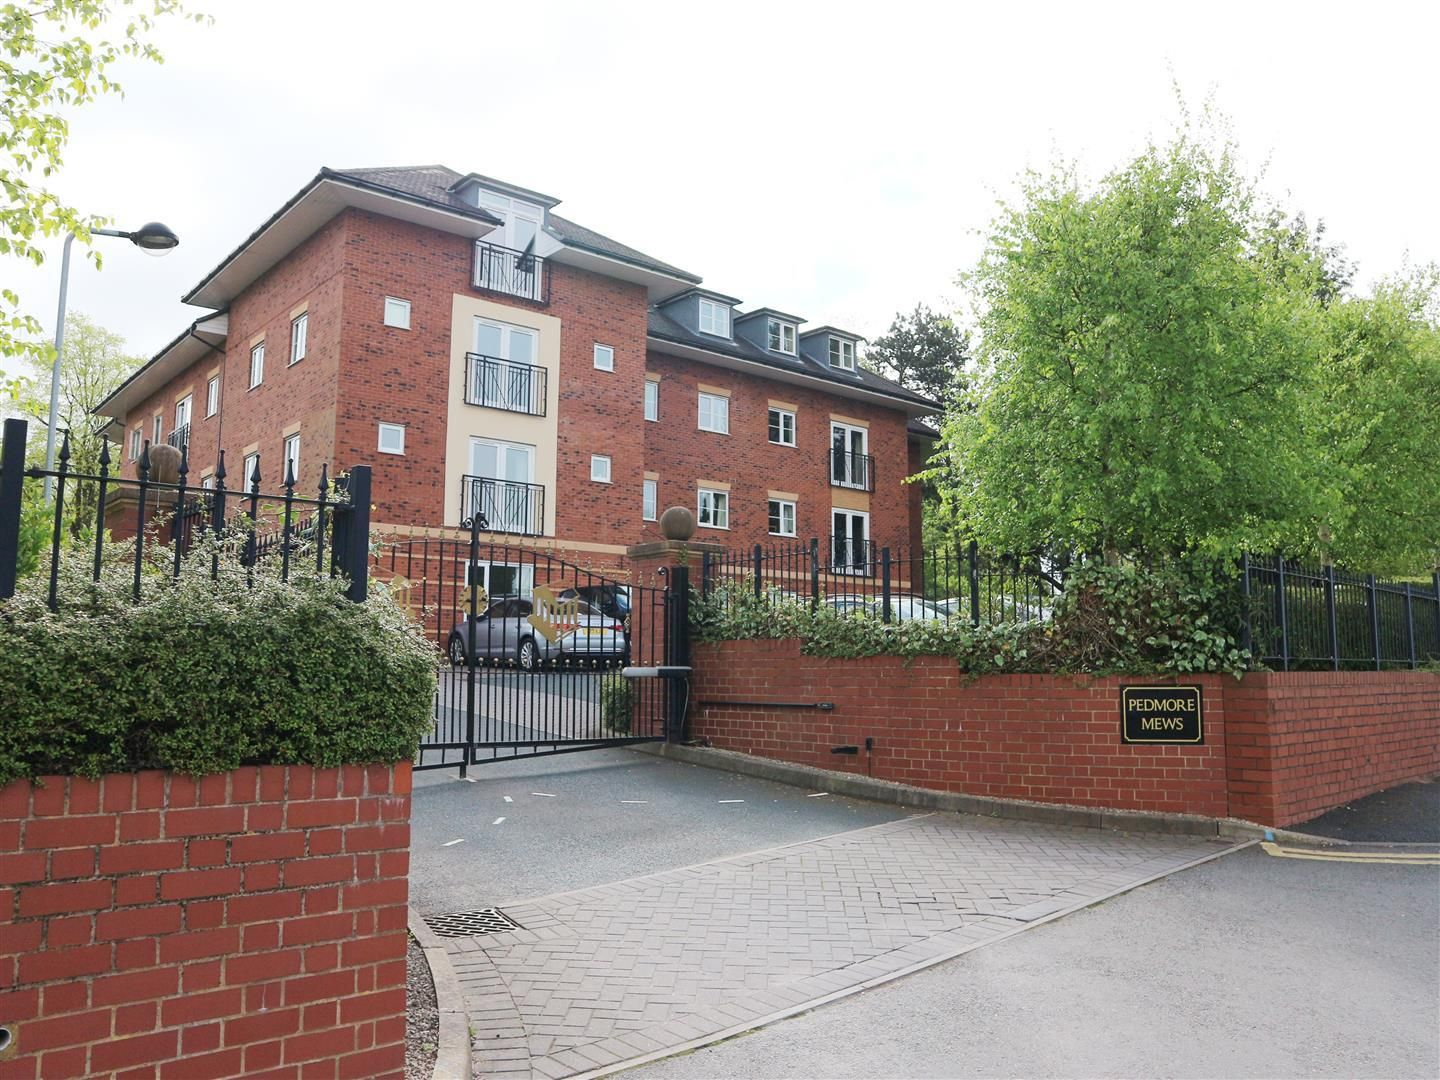 2 bed apartment for sale in Pedmore, DY8